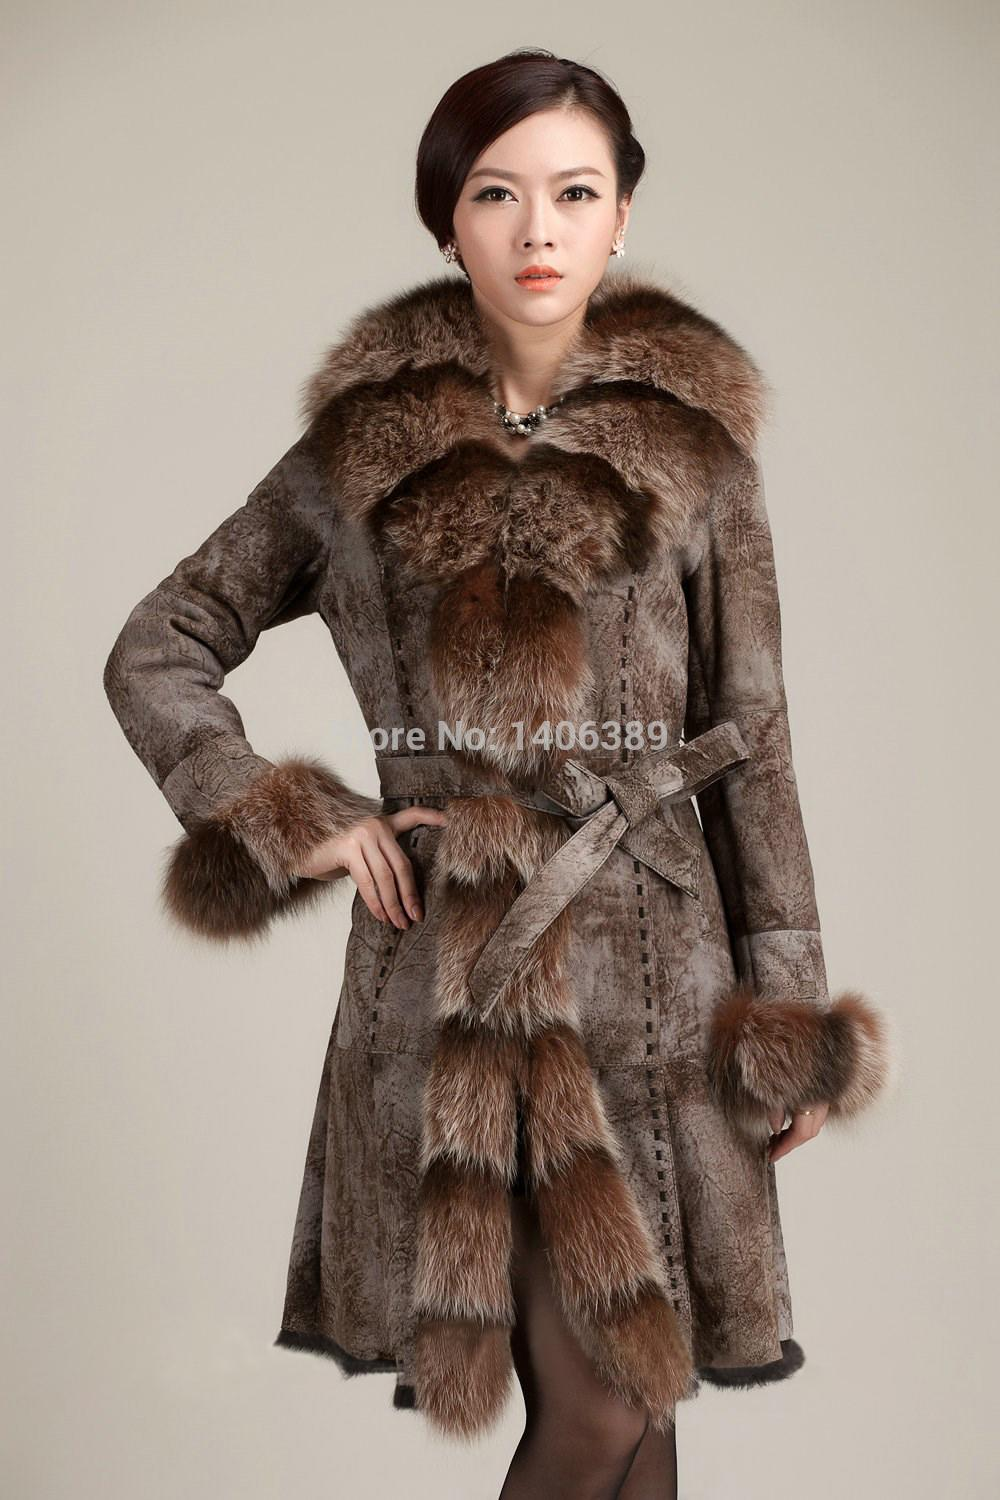 Dl6077 Luxury 100% Real Fur Jacket Genuine Rabbit Leather Coats Women Winter Double Faced Fur Coats X Long Coats From Fashonlether, $743.74   Dhgate.Com